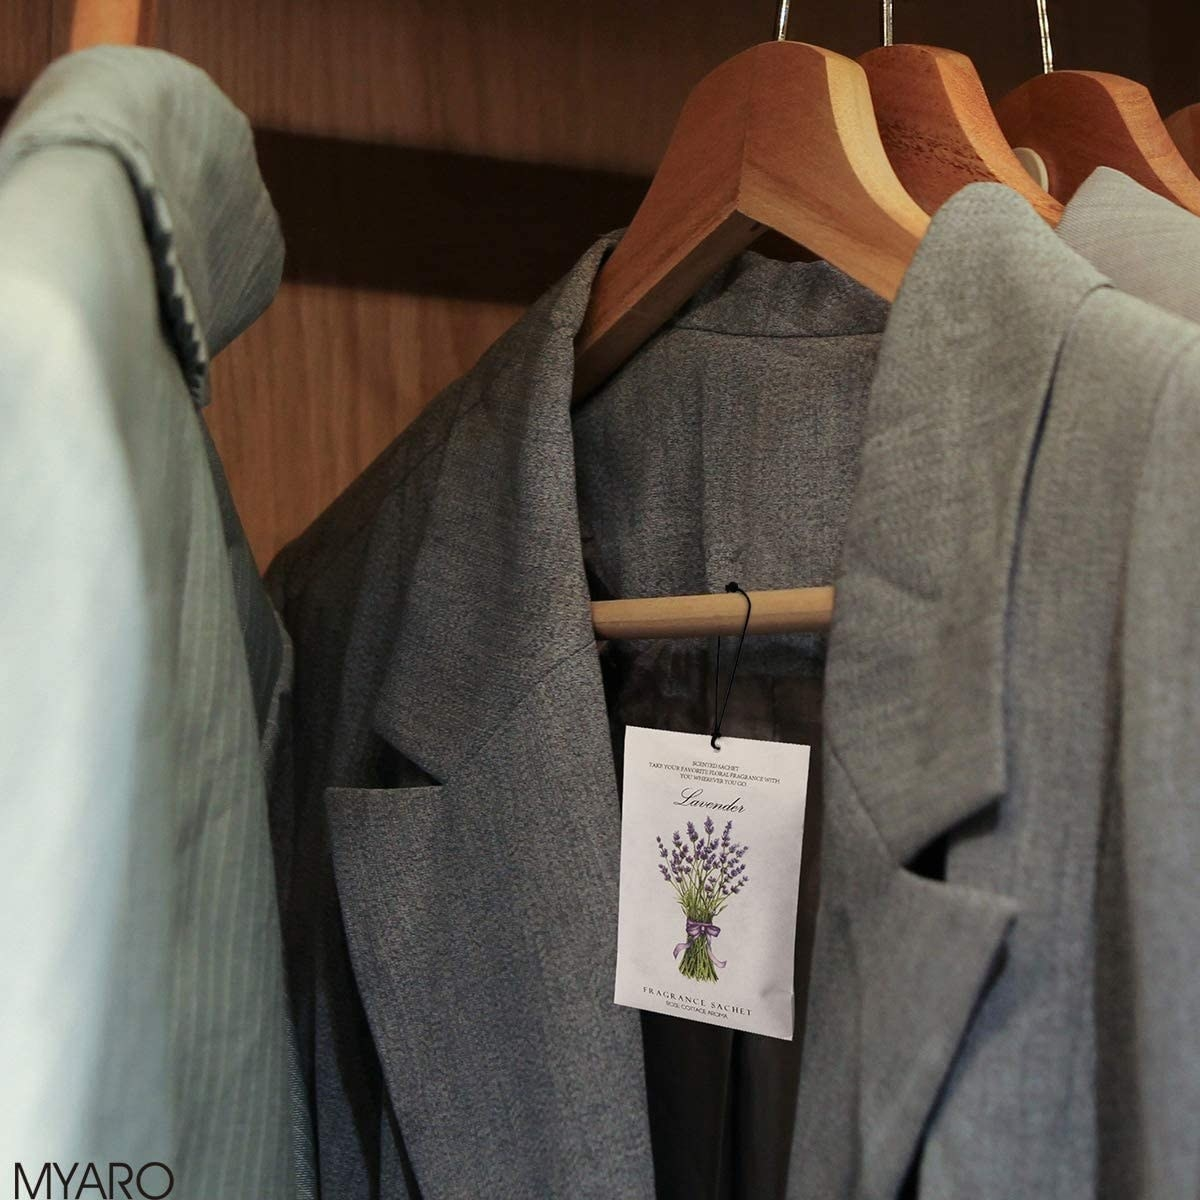 A lavender sachet hangs in a coat that's hung in a closet